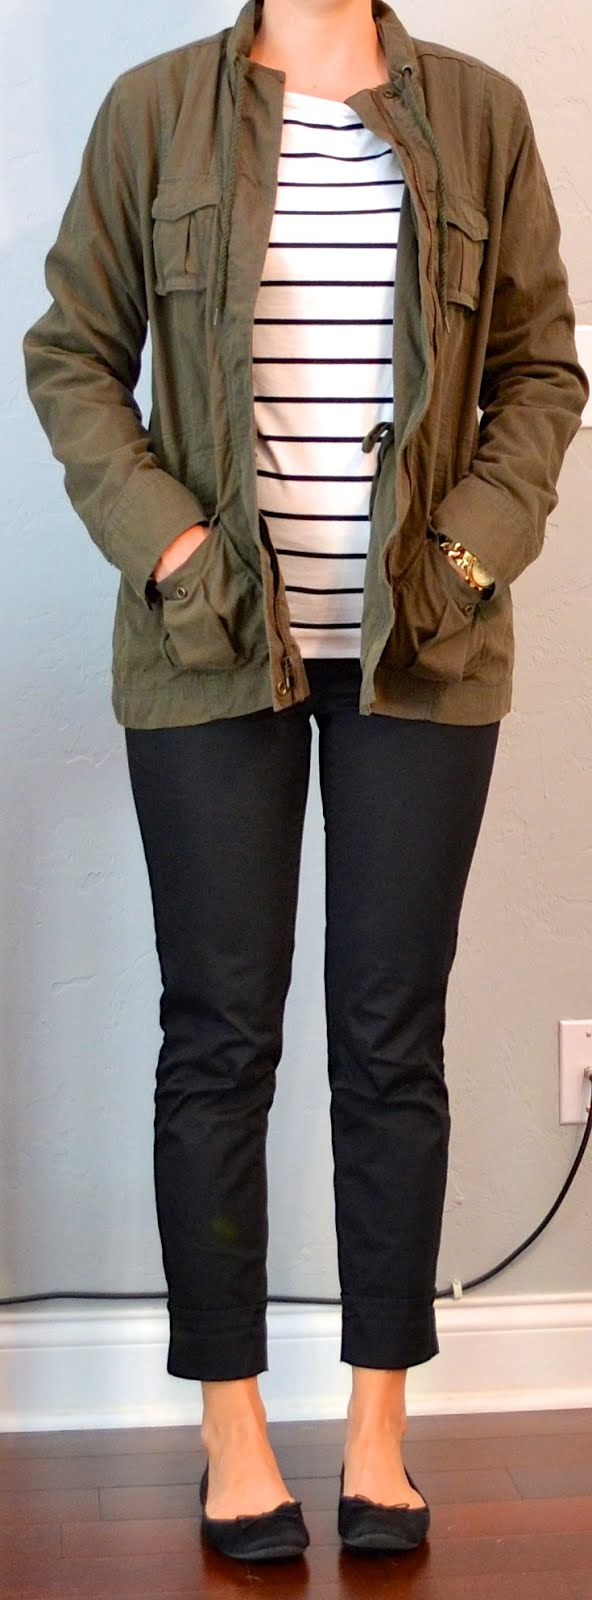 outfit post: striped shirt, military jacket, black cropped ...